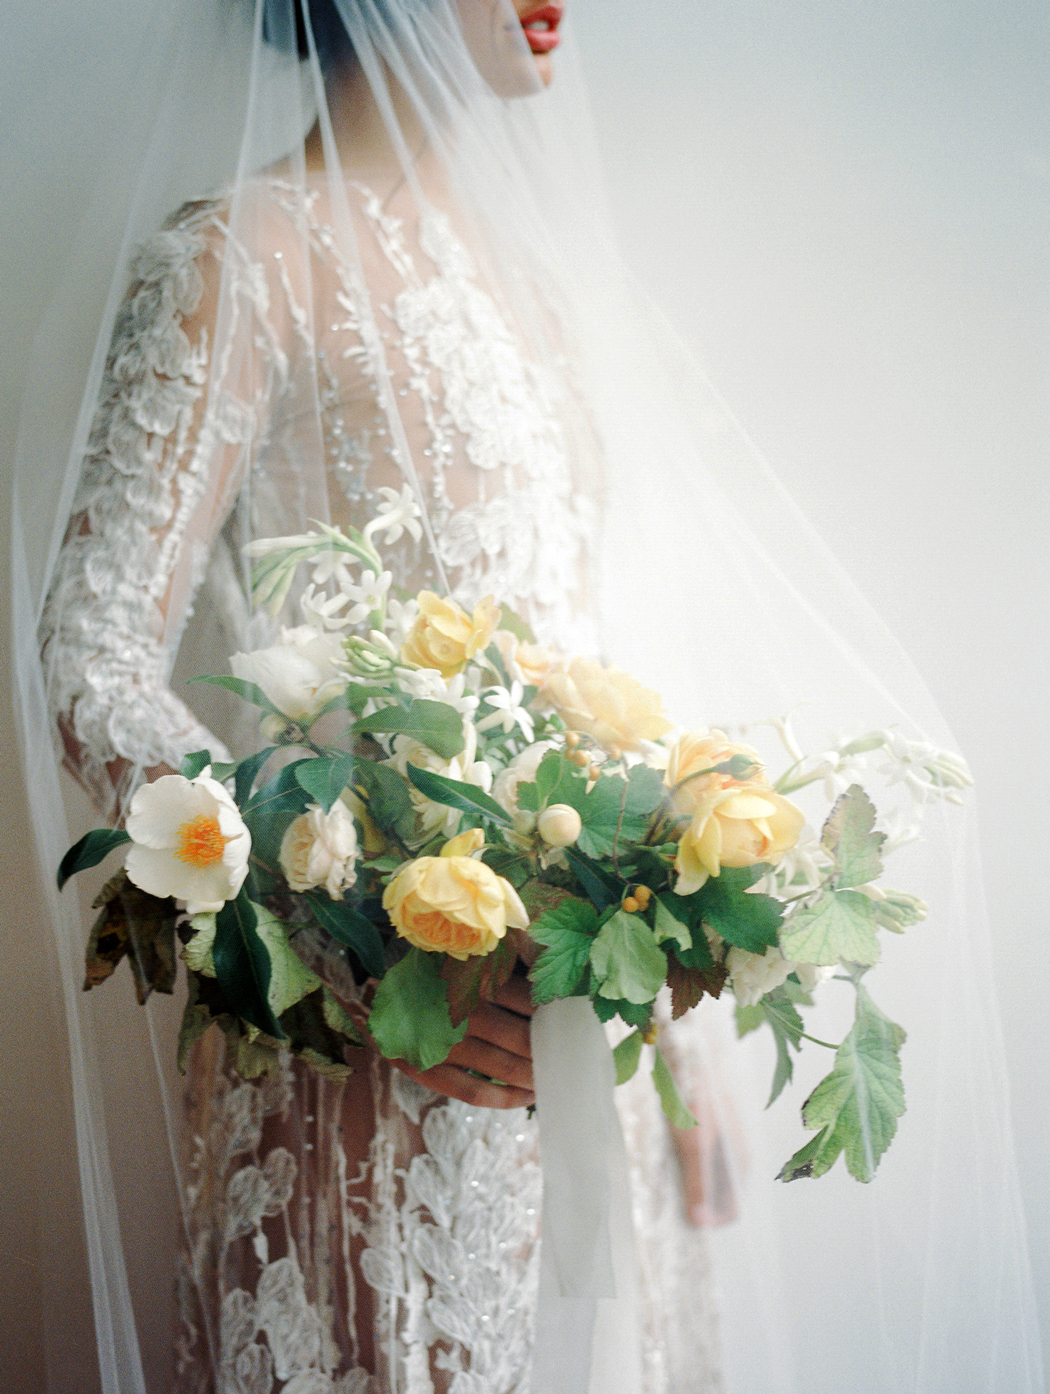 yellow roses and white florals with greenery bouquet